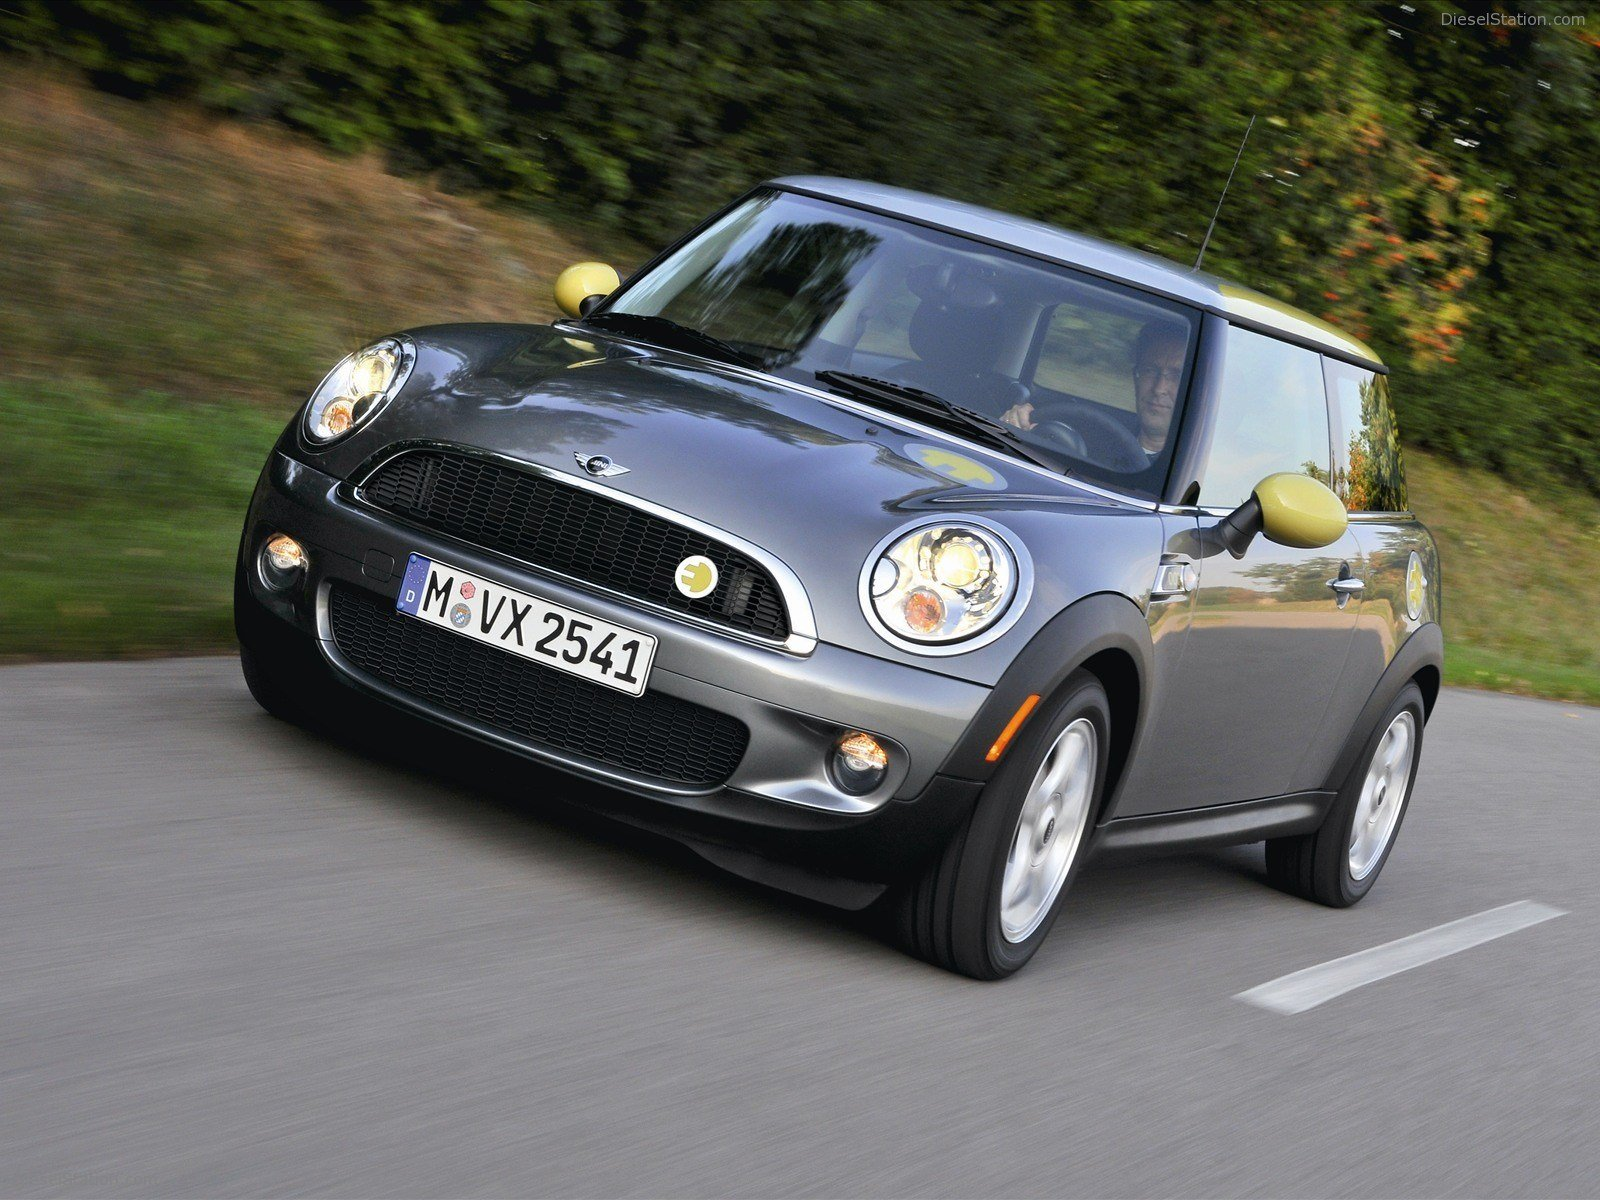 Latest Bmw Mini E Exotic Car Photo 05 Of 16 Diesel Station Free Download